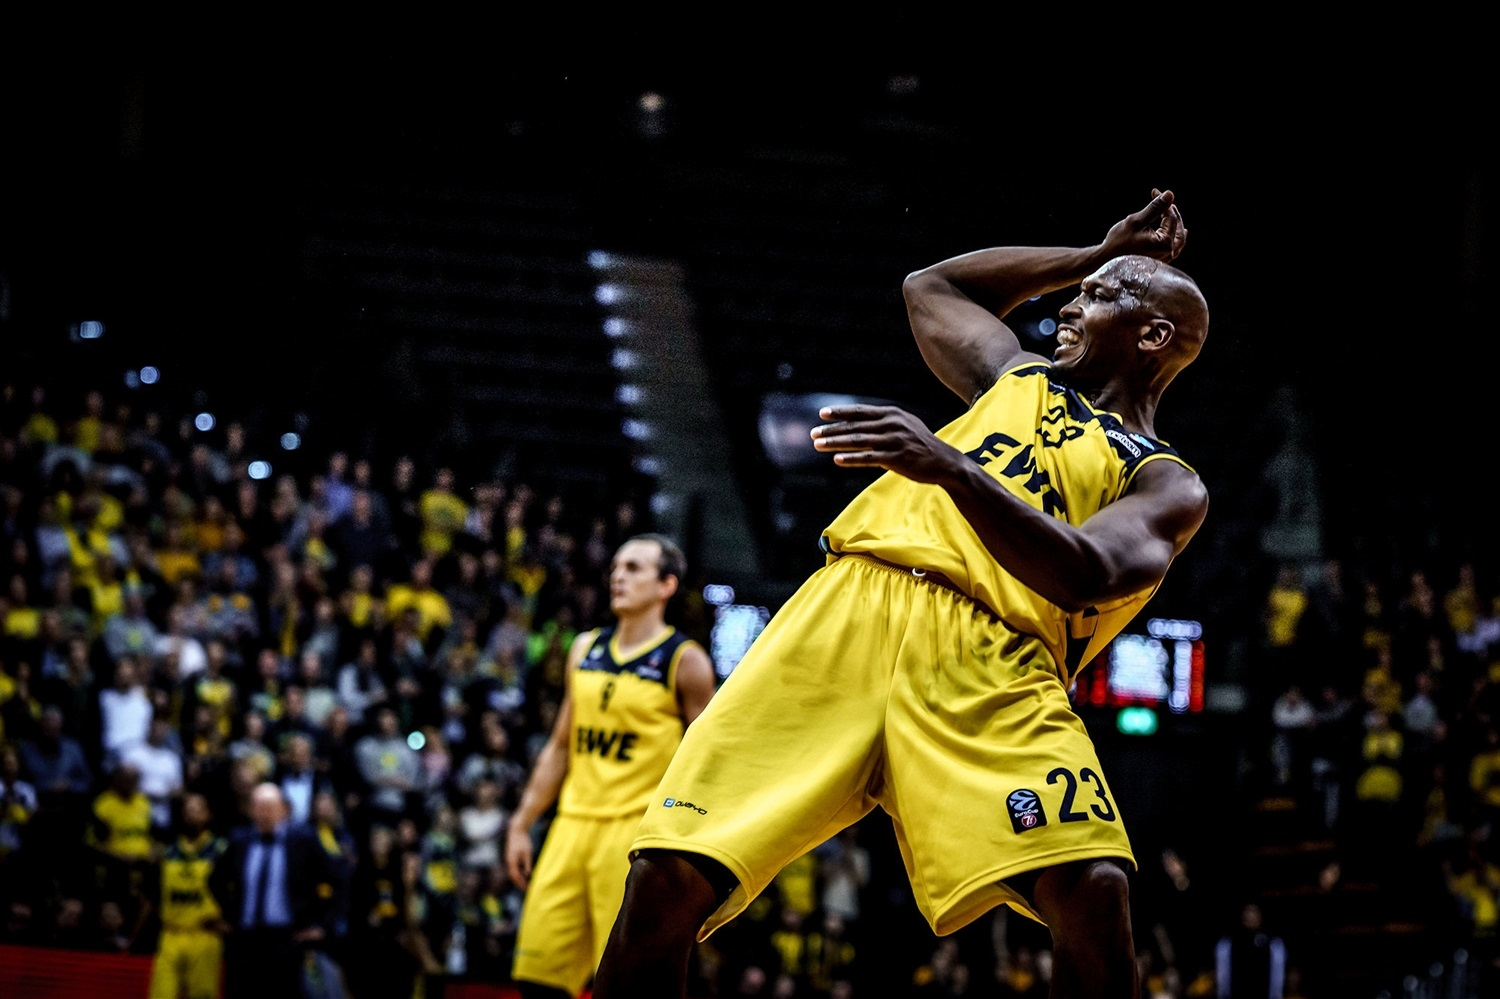 Rickey Paulding - EWE Baskets Oldenburg (photo Ulf Duda - fotoduda.de) - EC19